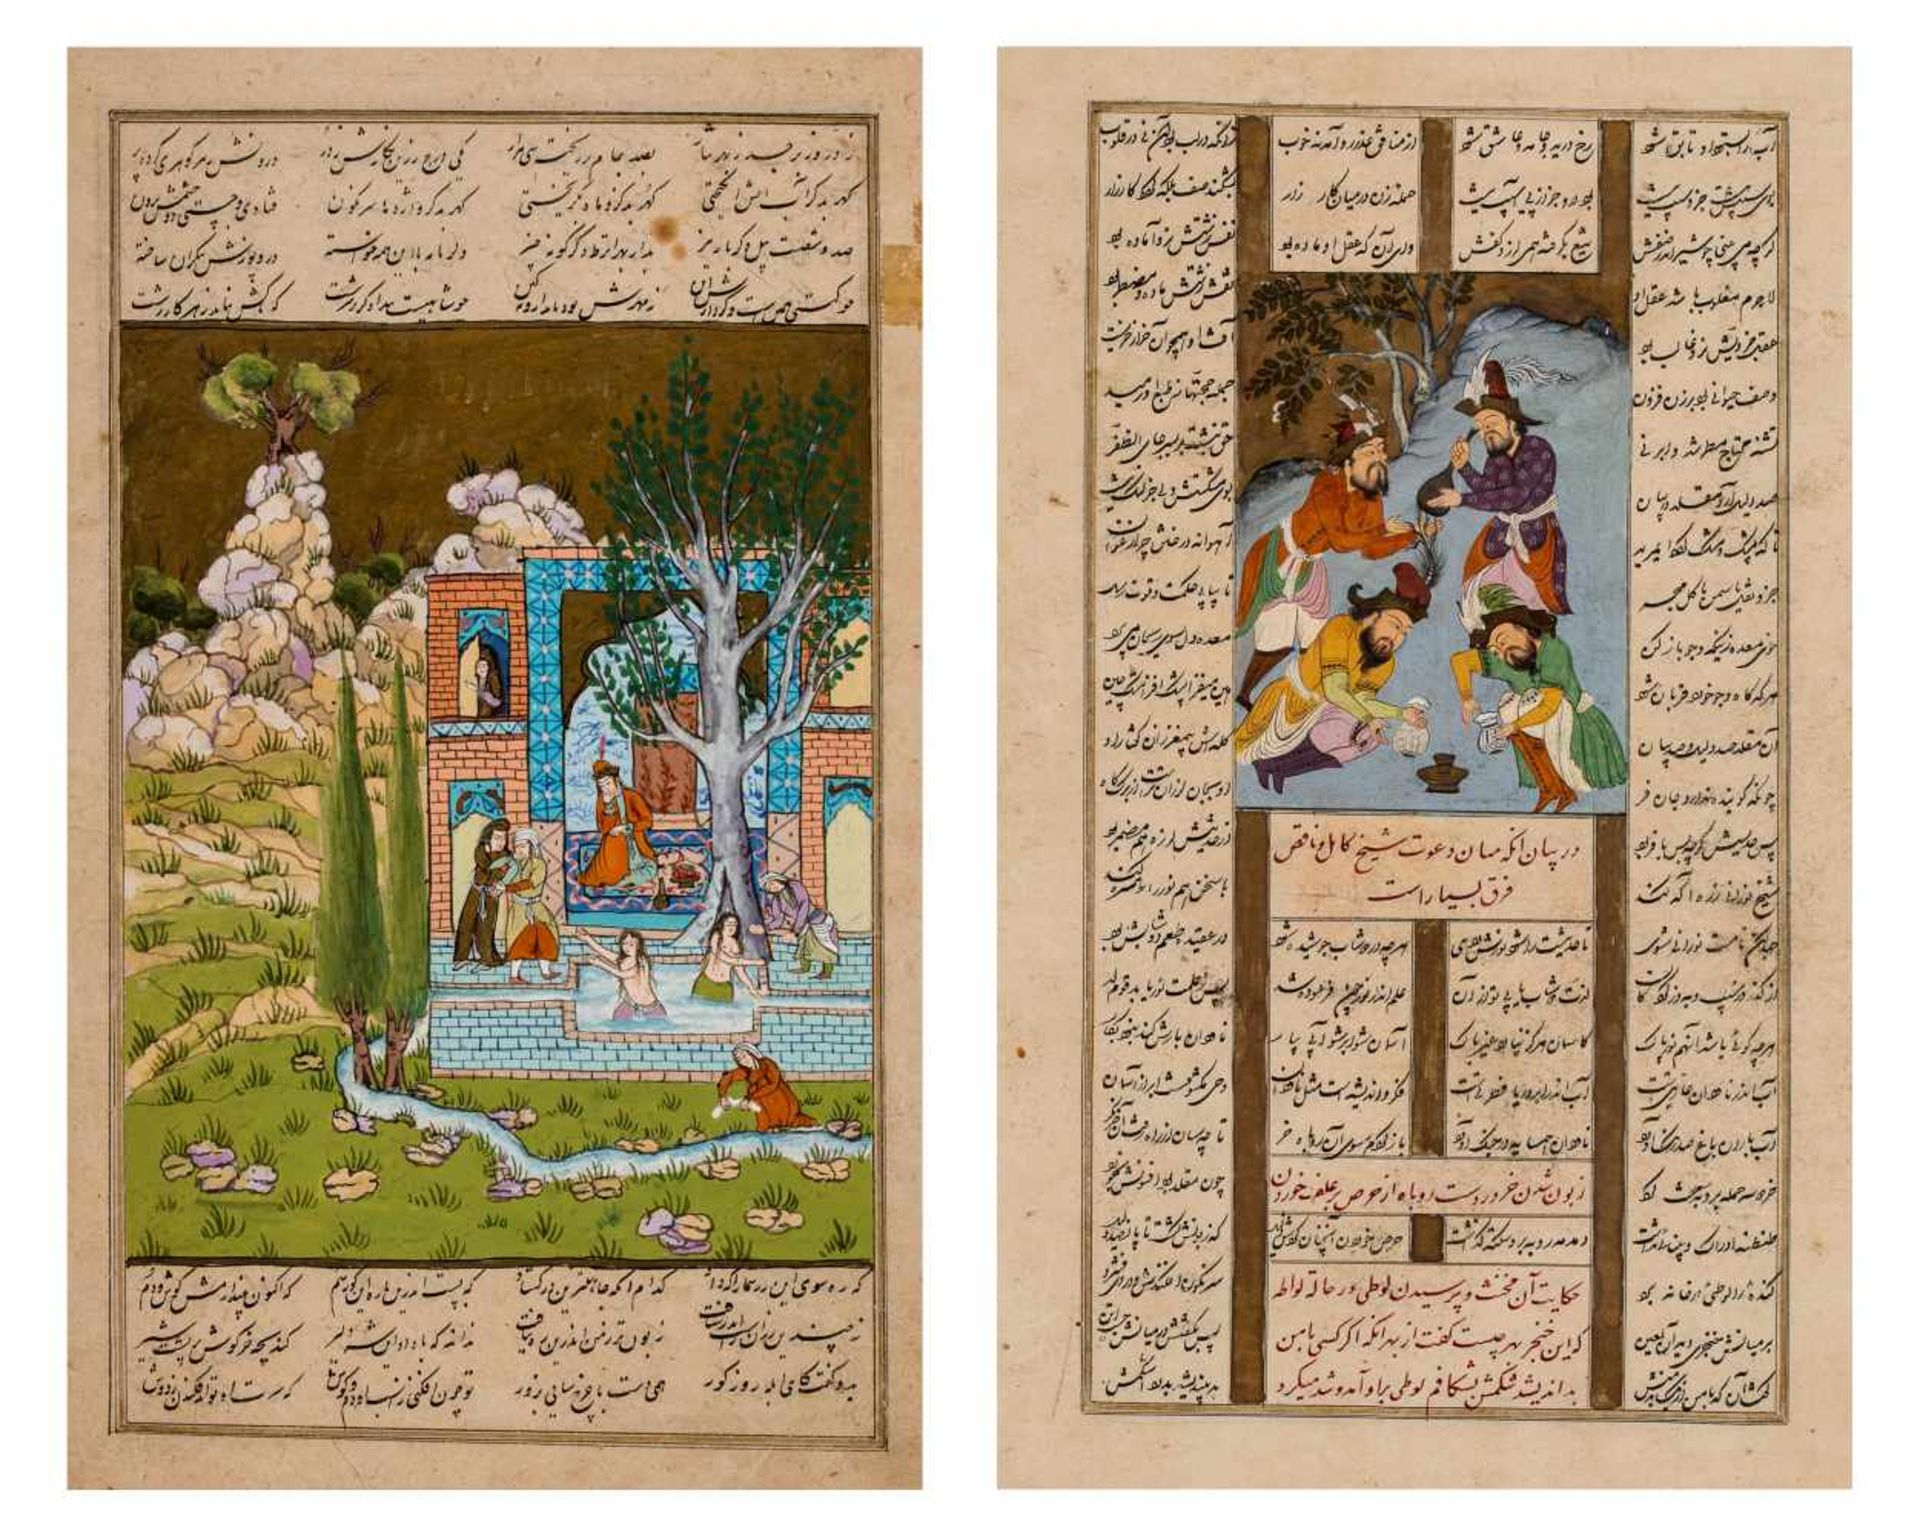 TWO INDO-PERSIAN MINIATURE PAINTINGS WITH CALLIGRAPHY - 19th CENTURYMiniature painting with colors